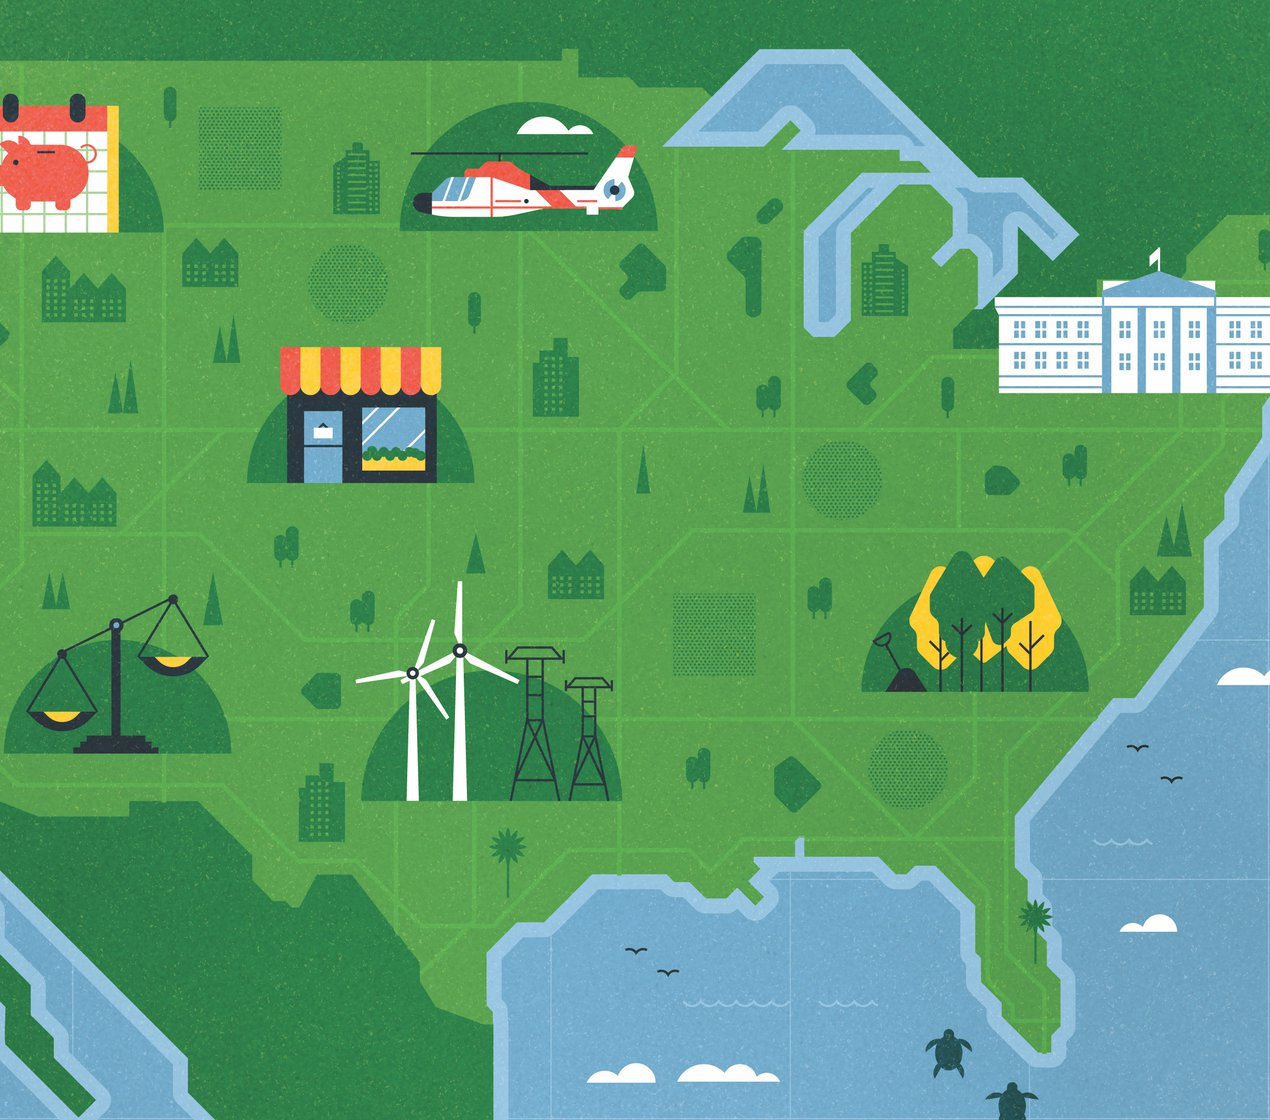 Climate resilience road map_hero image